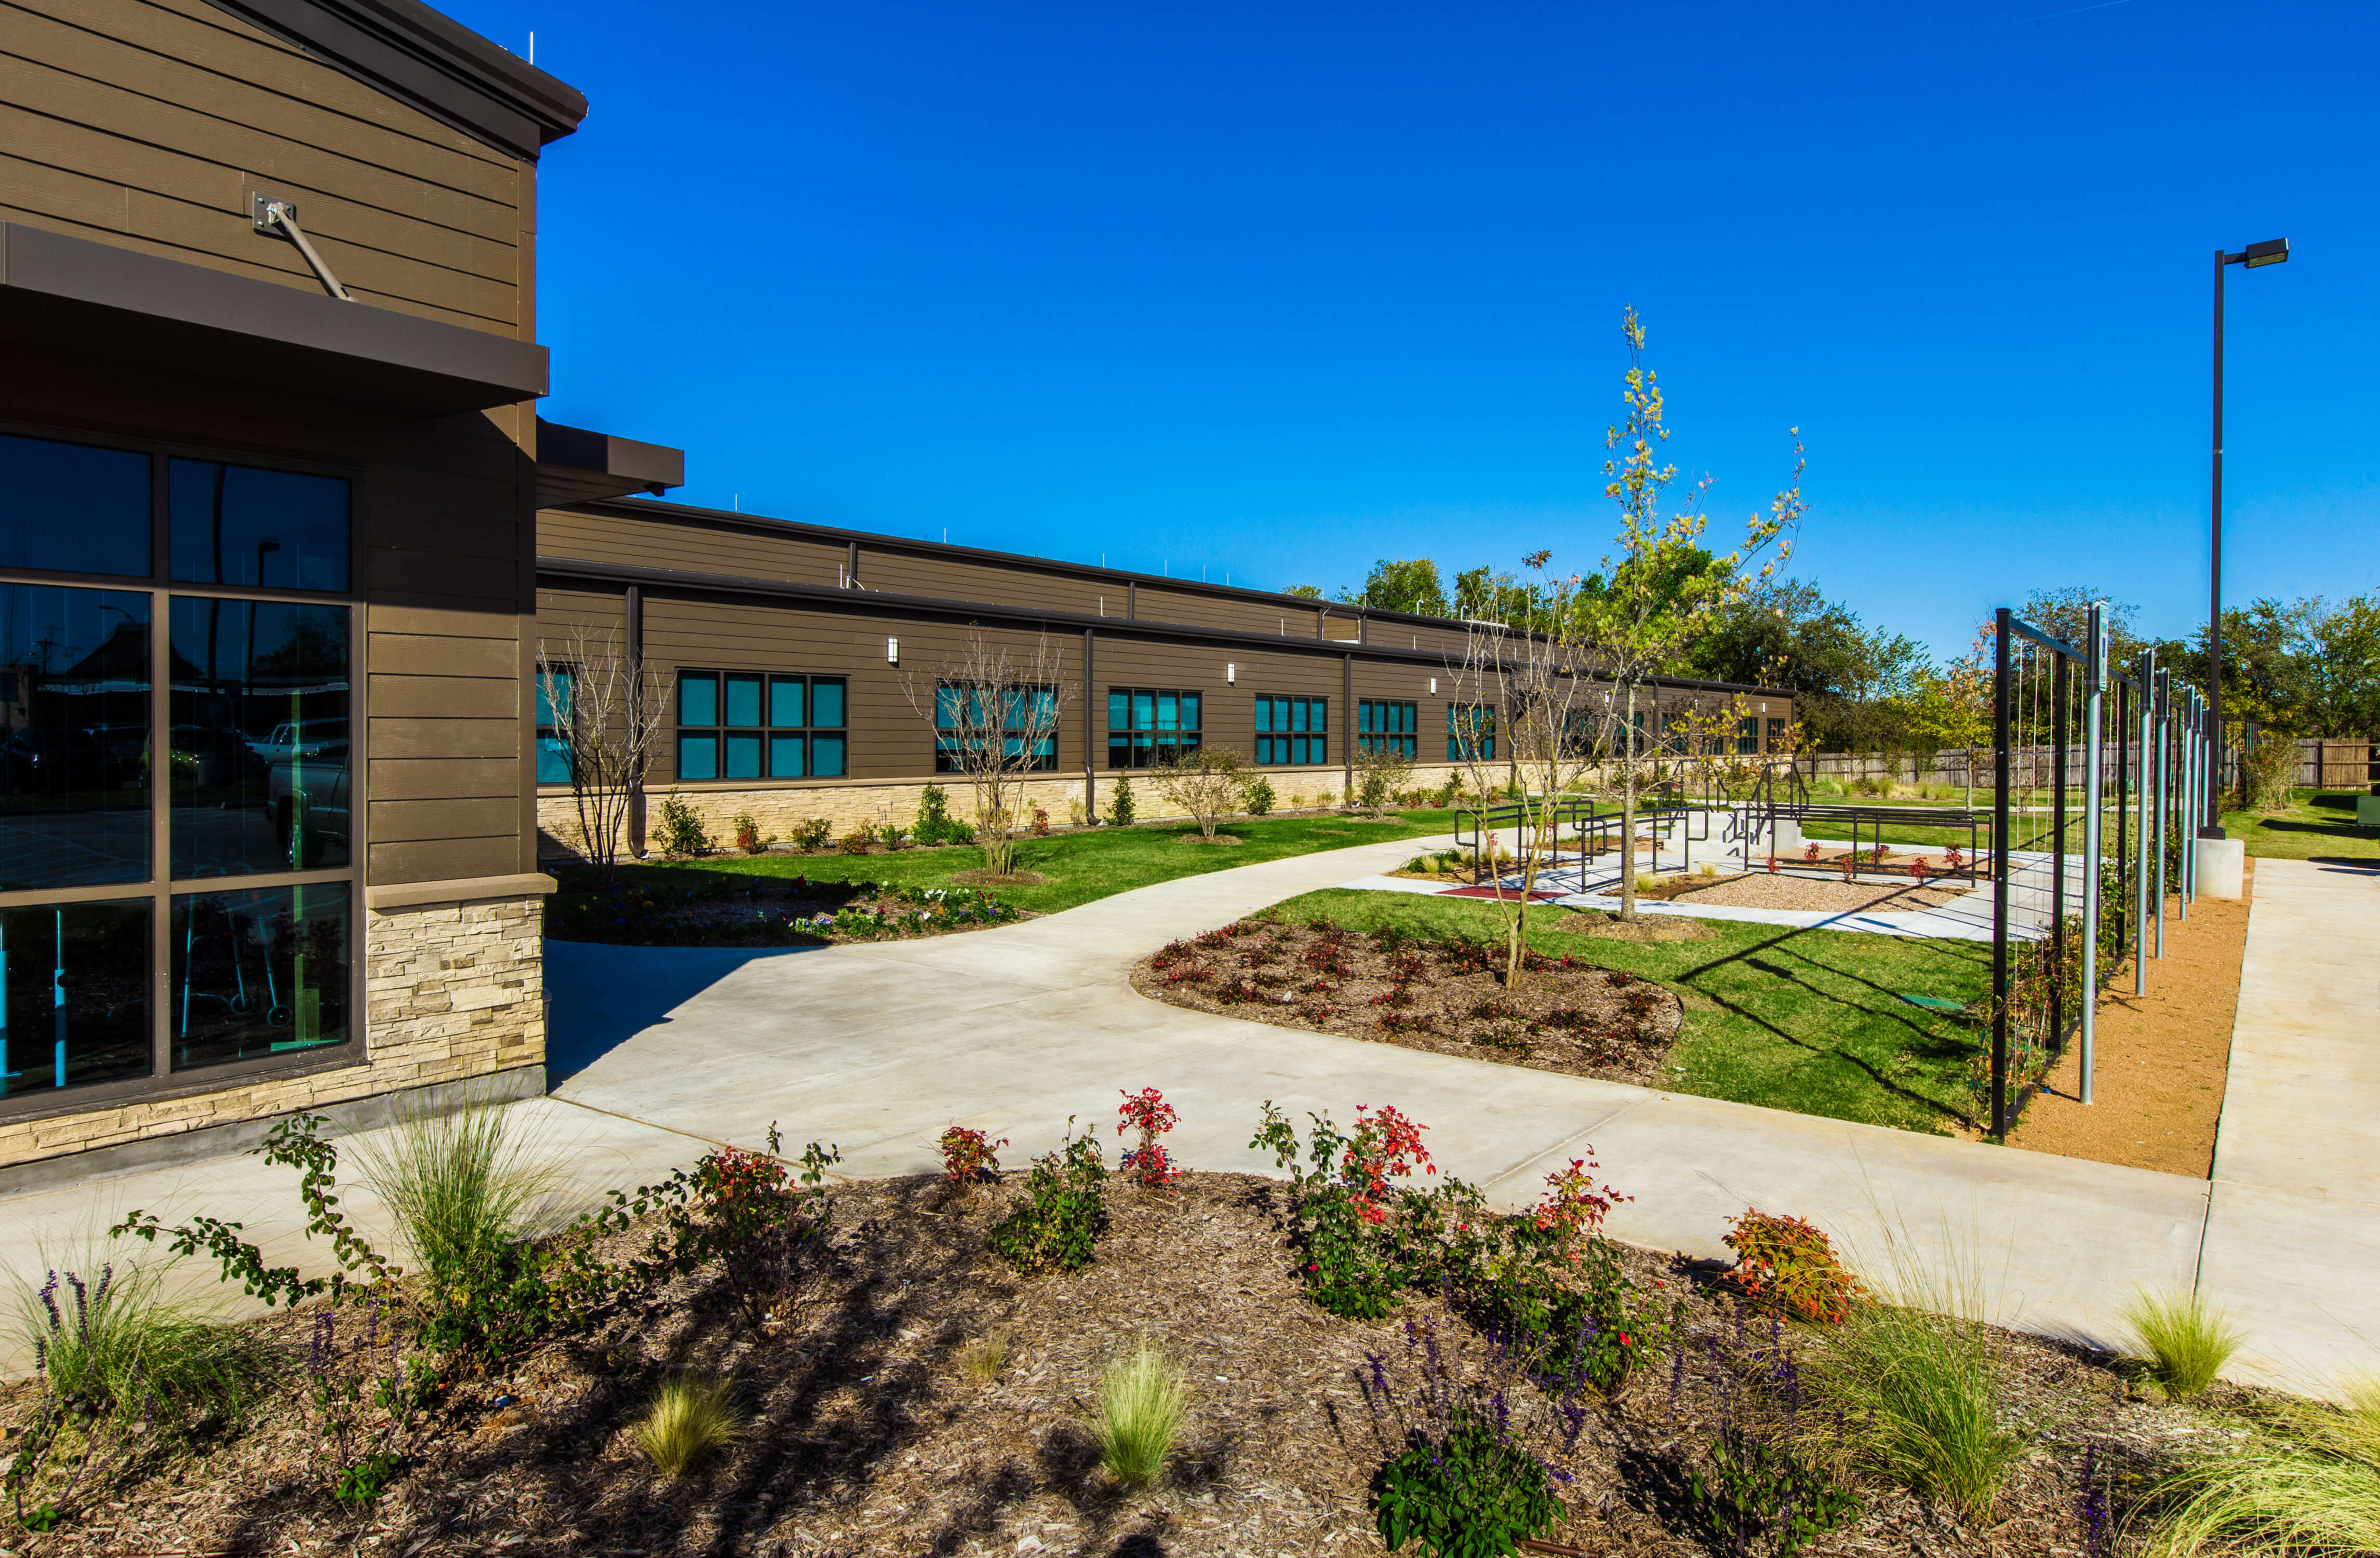 18-weatherford-rehab-hospital-with-colors-bumped-up-final-image-short-edge-10-x-300-dpi